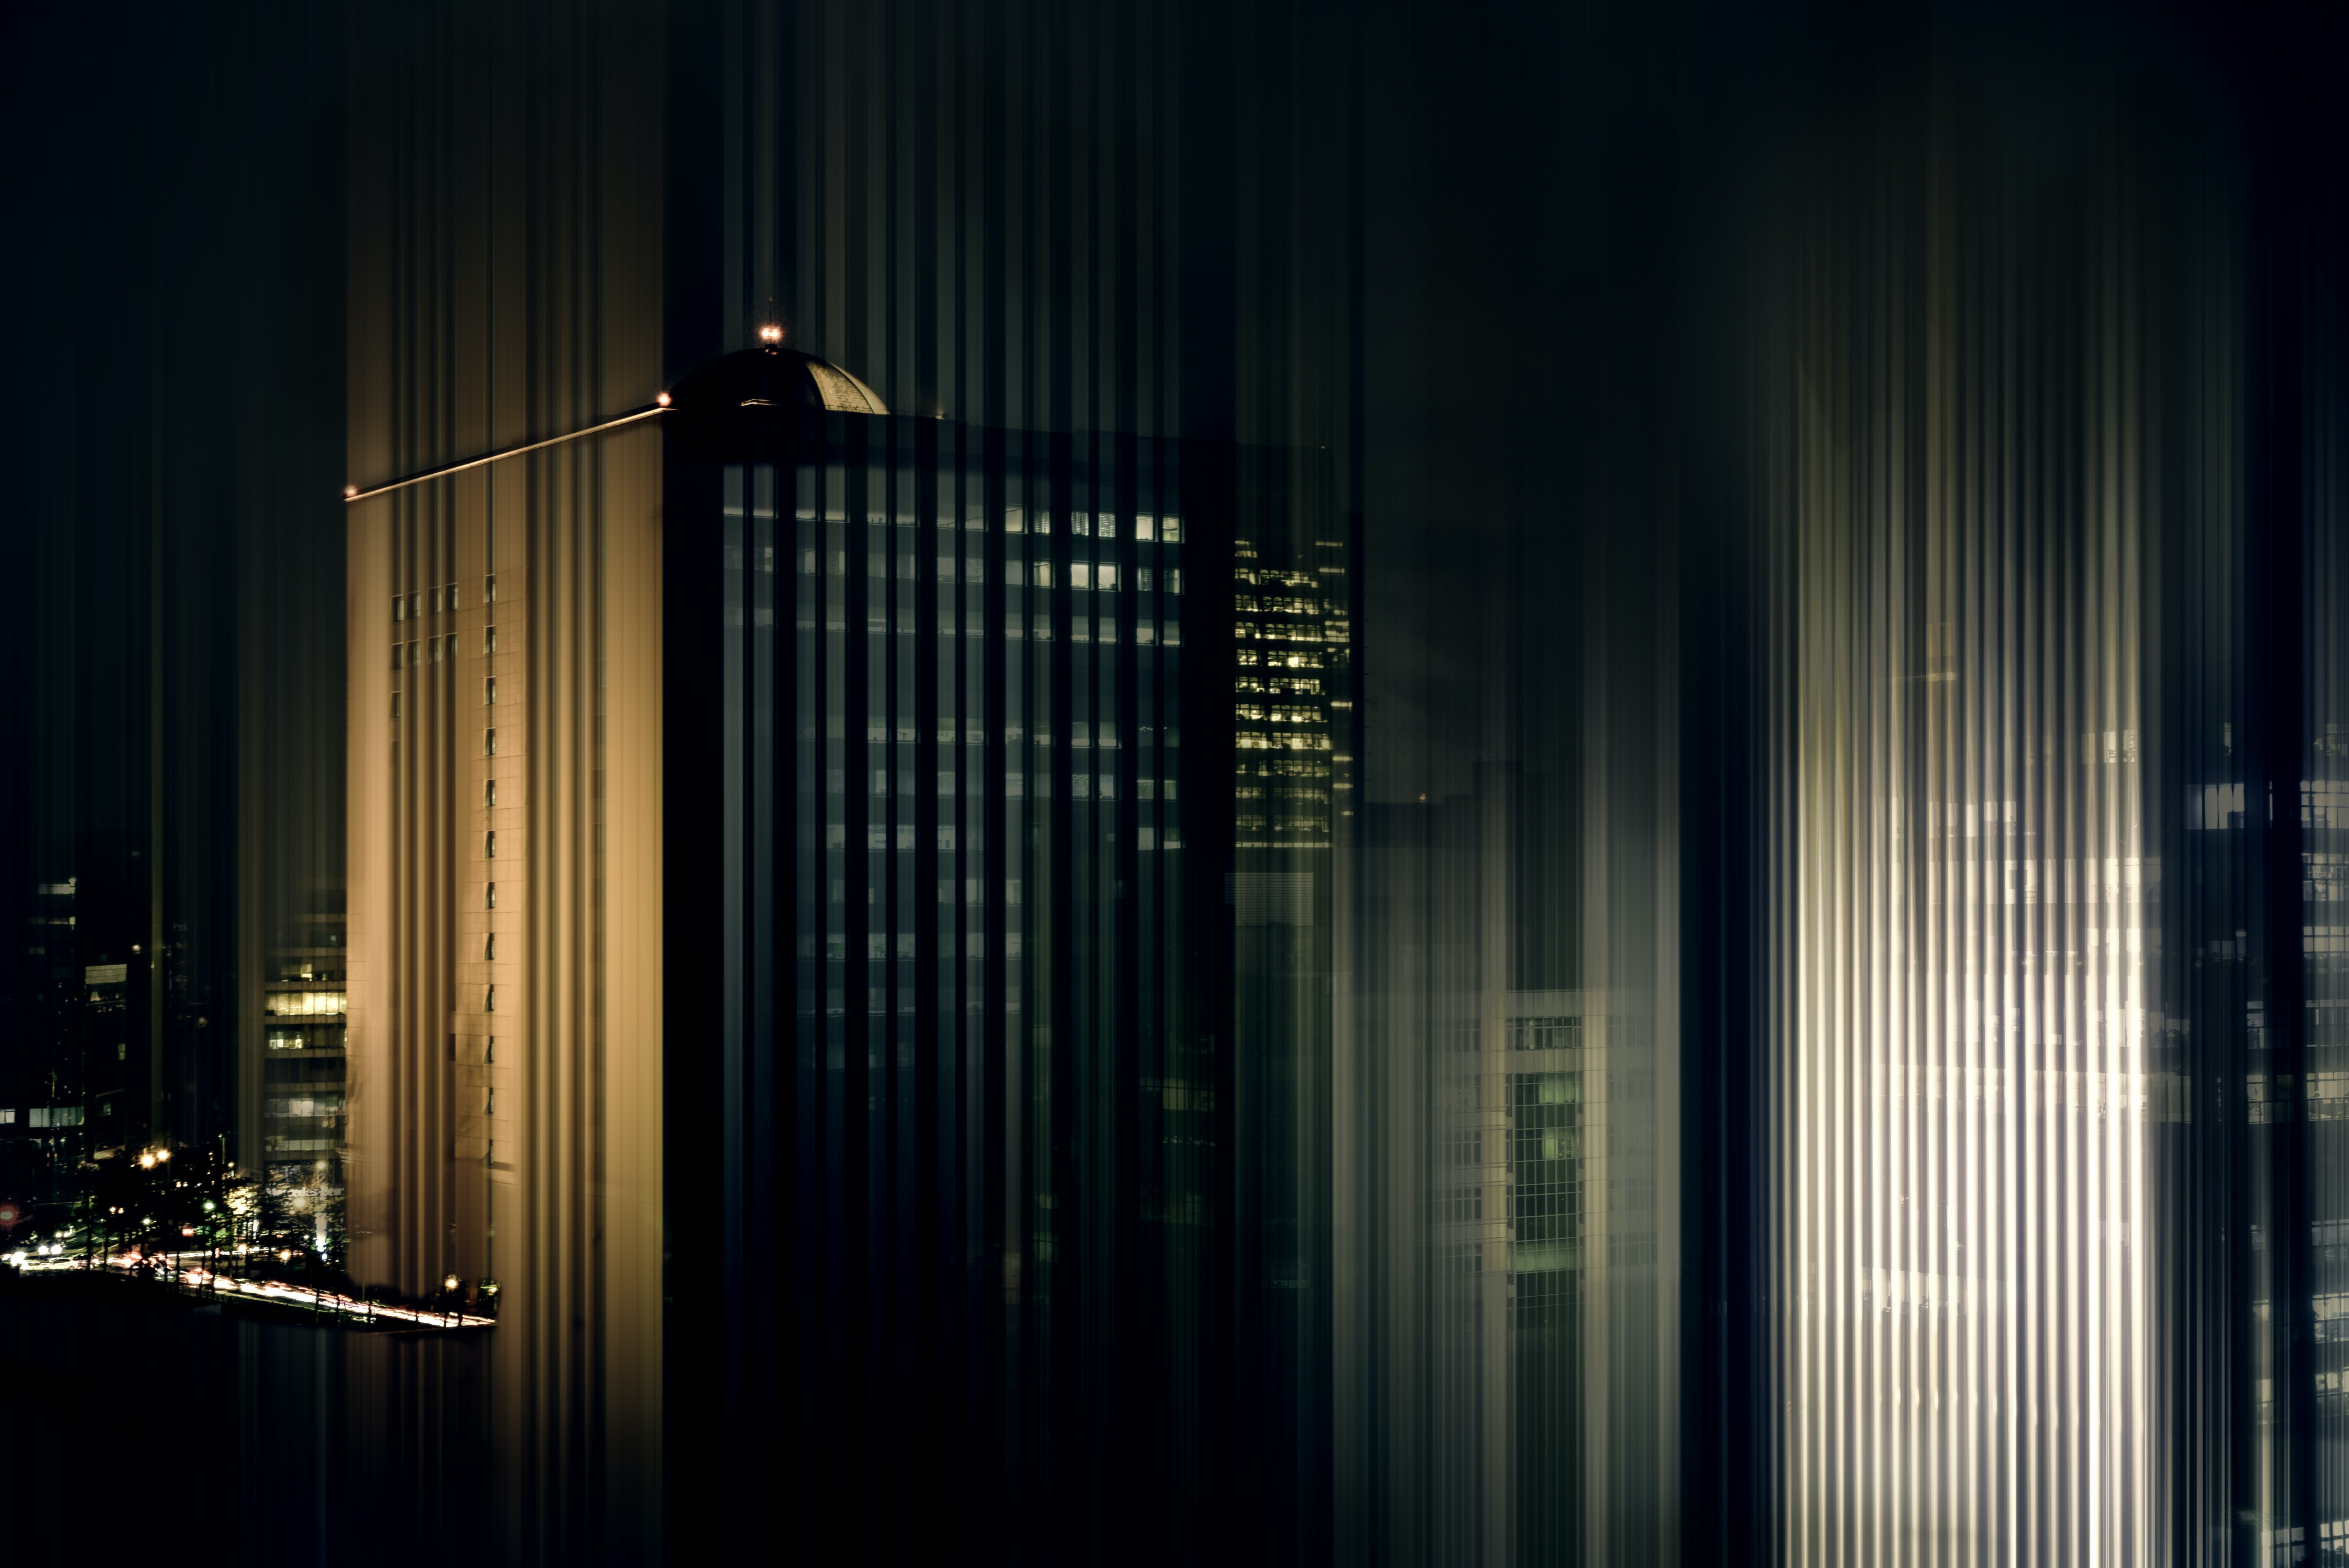 gray high-rise buildings at night time